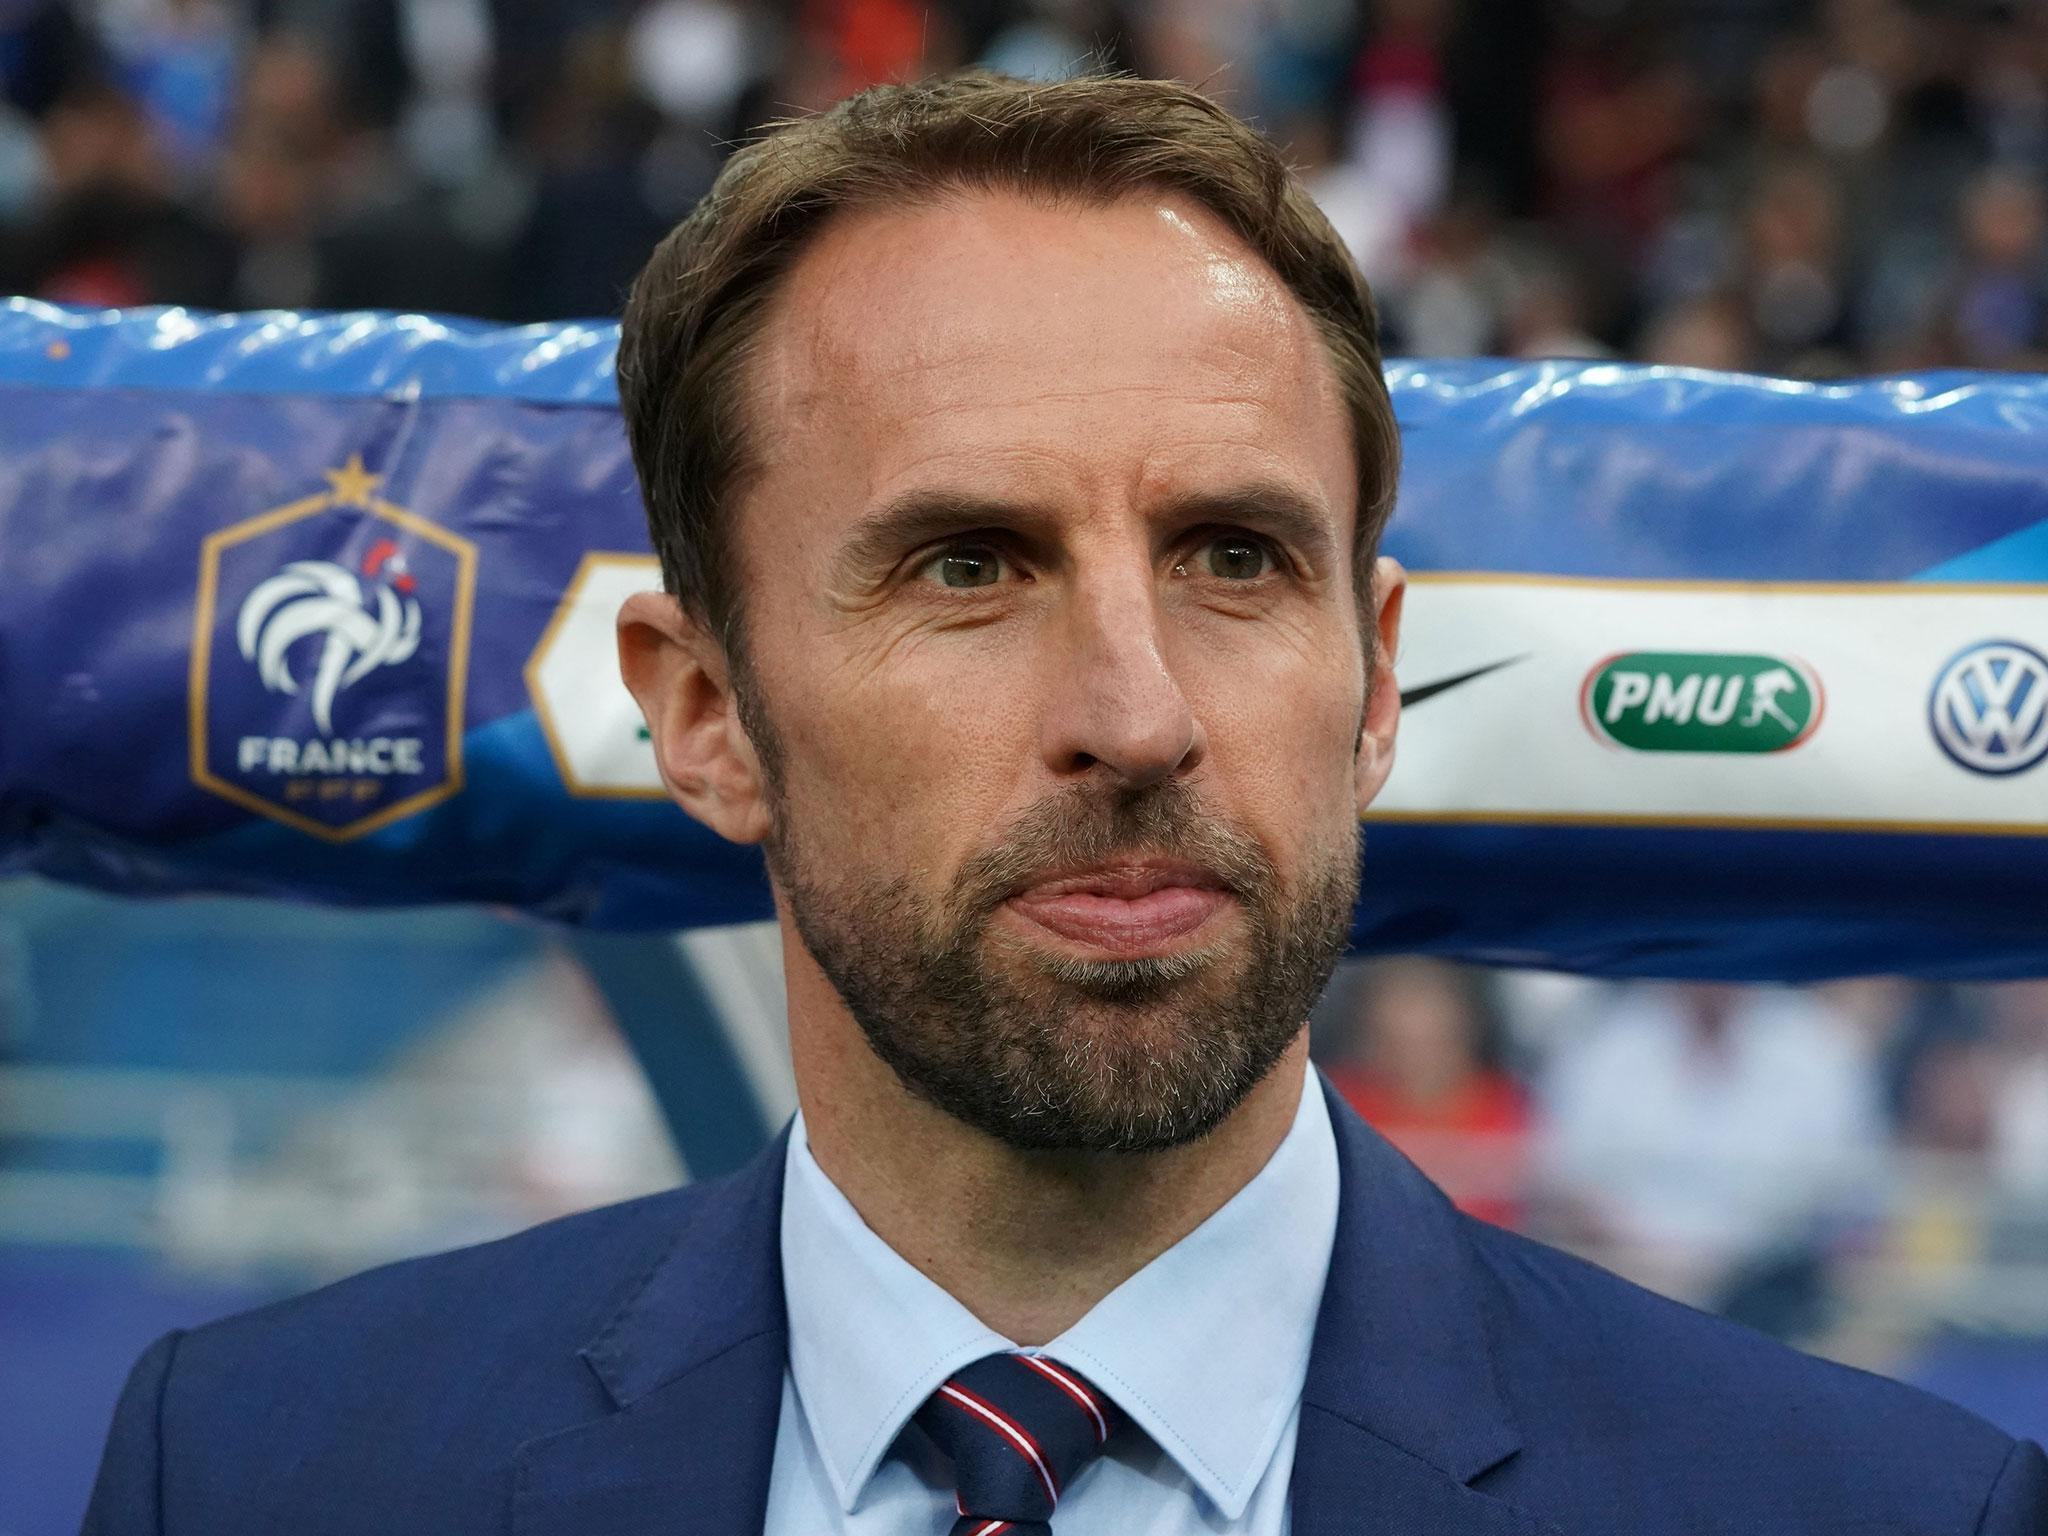 James Ward-Prowse reveals Gareth Southgate has been helping England's Under-21s prepare for Slovakia game